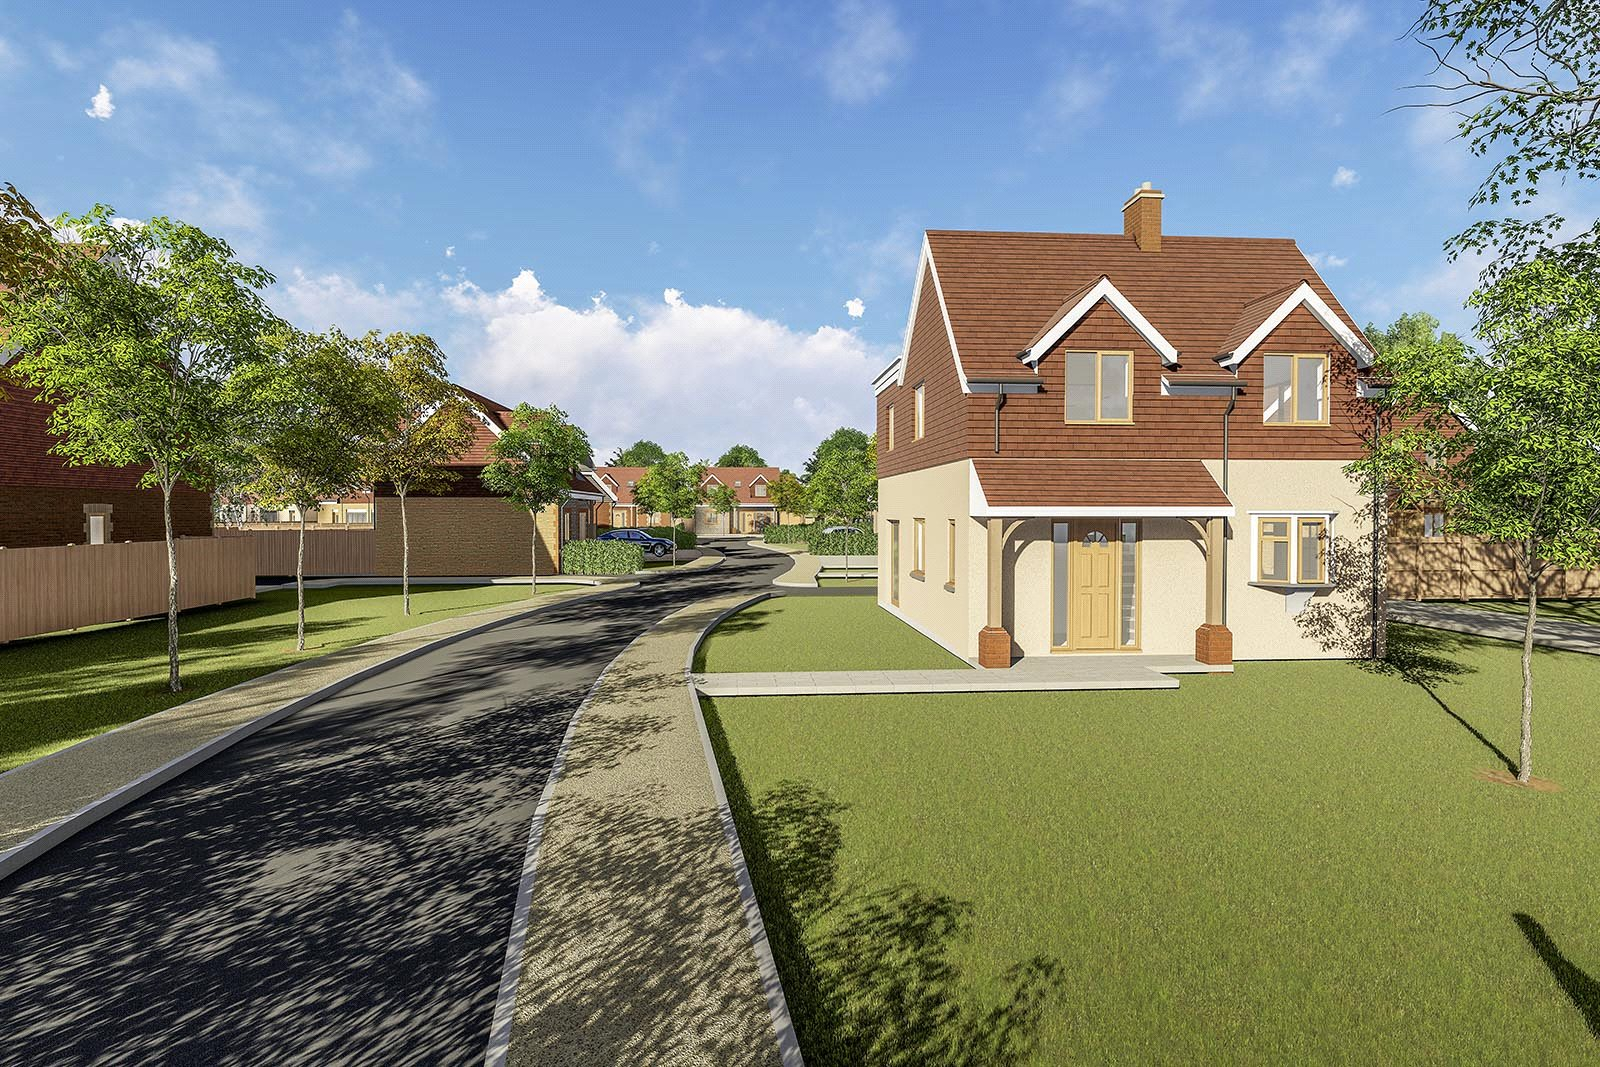 4 bed house for sale in Swallows Gate, Dappers Lane, Angmering 1